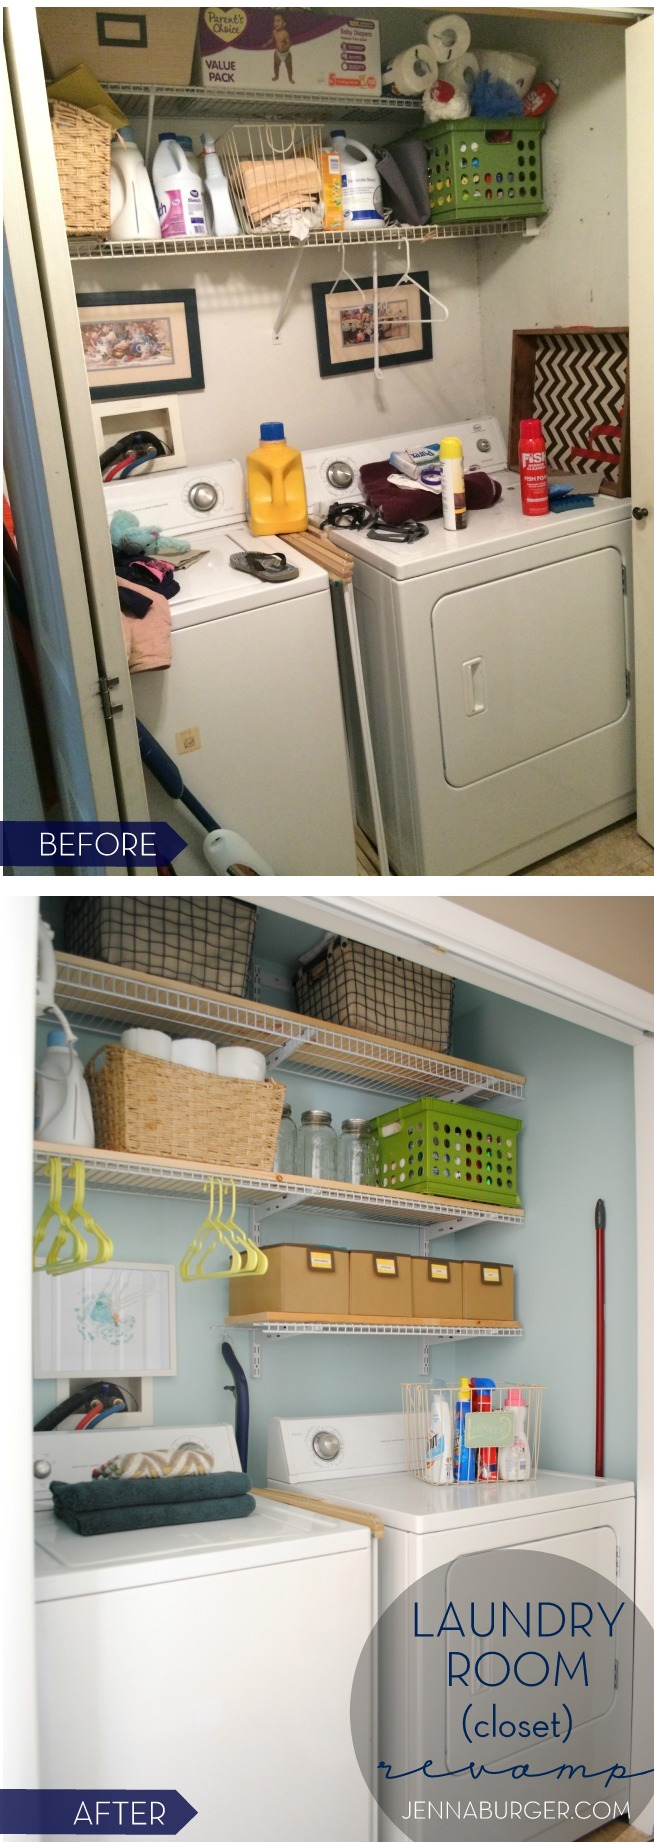 "LAUNDRY ROOM (closet) REVAMP in one weekend!  New paint, More storage, and Pops of color!  All for about $150.  This laundry ""closet"" is now 100% functional & pretty on the eyes.  Before & After by Jenna Burger Design, www.jennaburger.com"